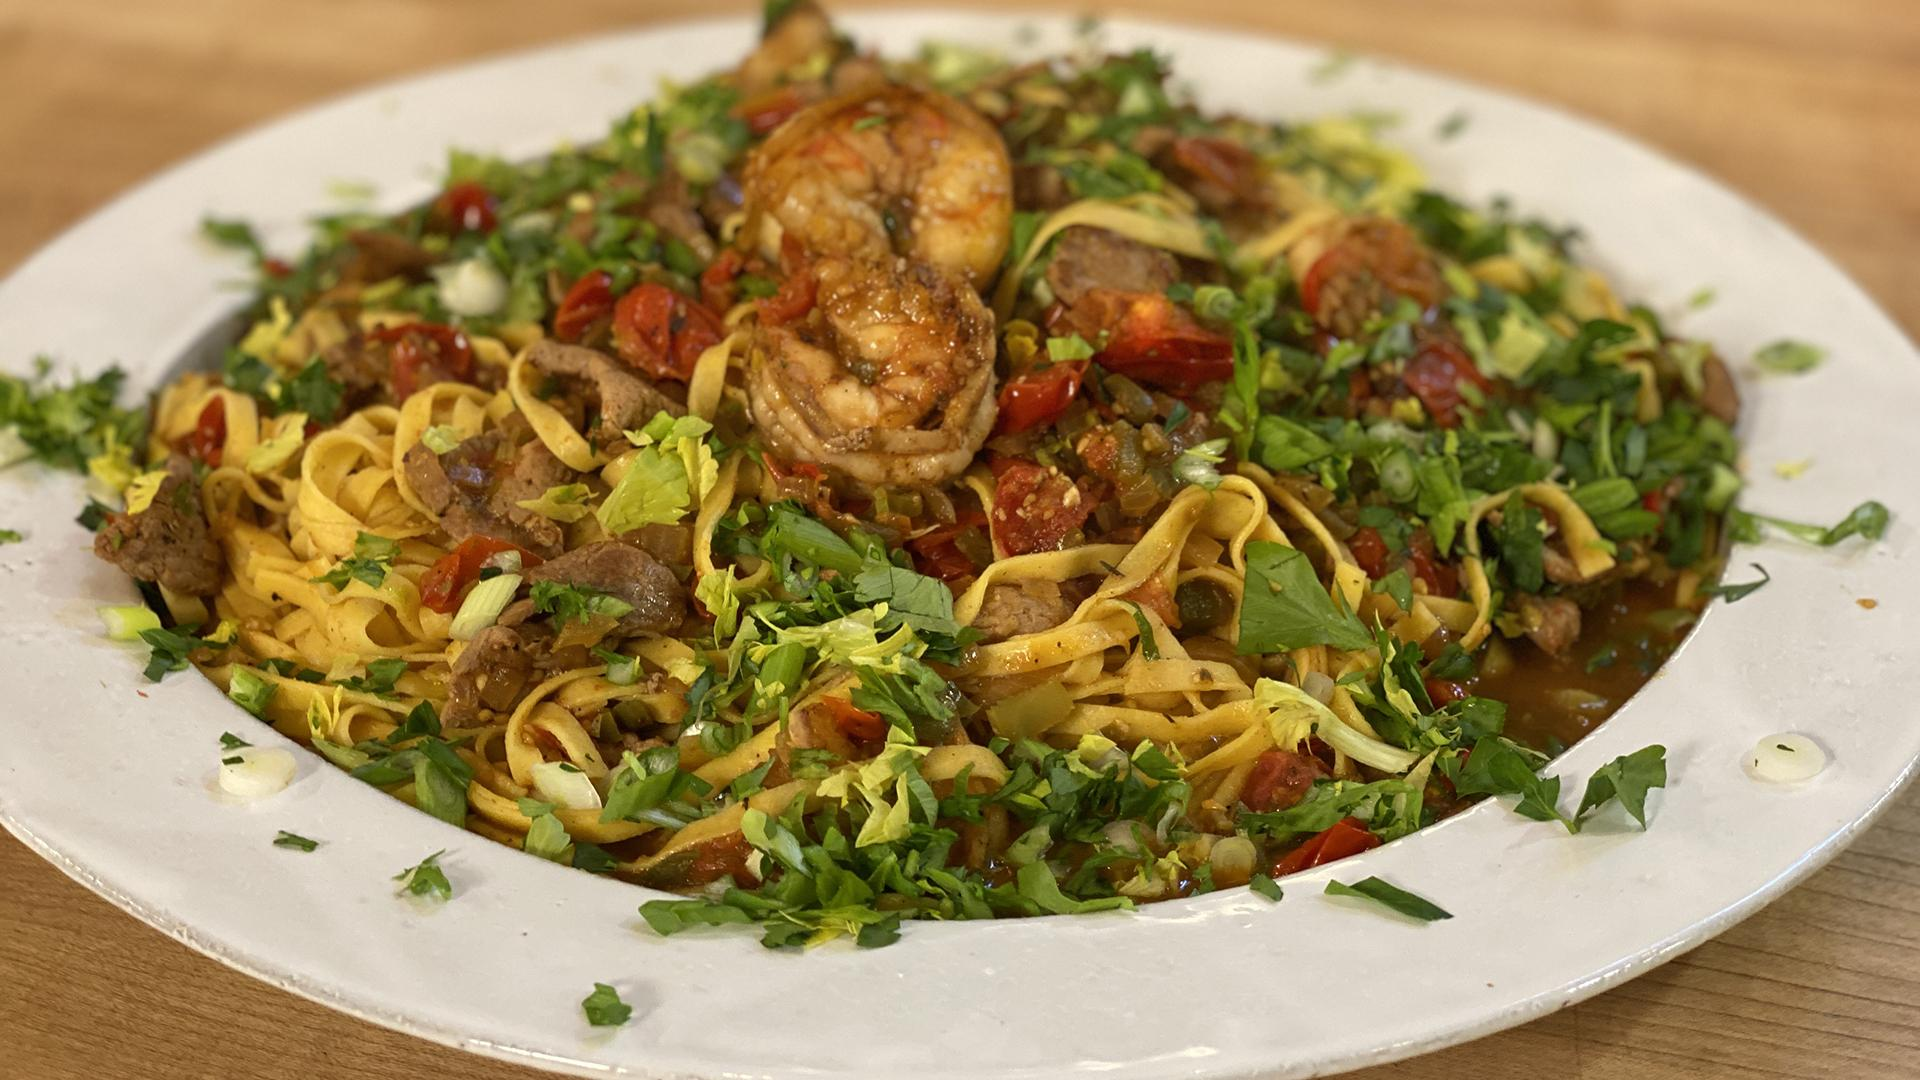 Jambalaya-Style Pasta with Spicy Pork (or Chicken) and Shrimp